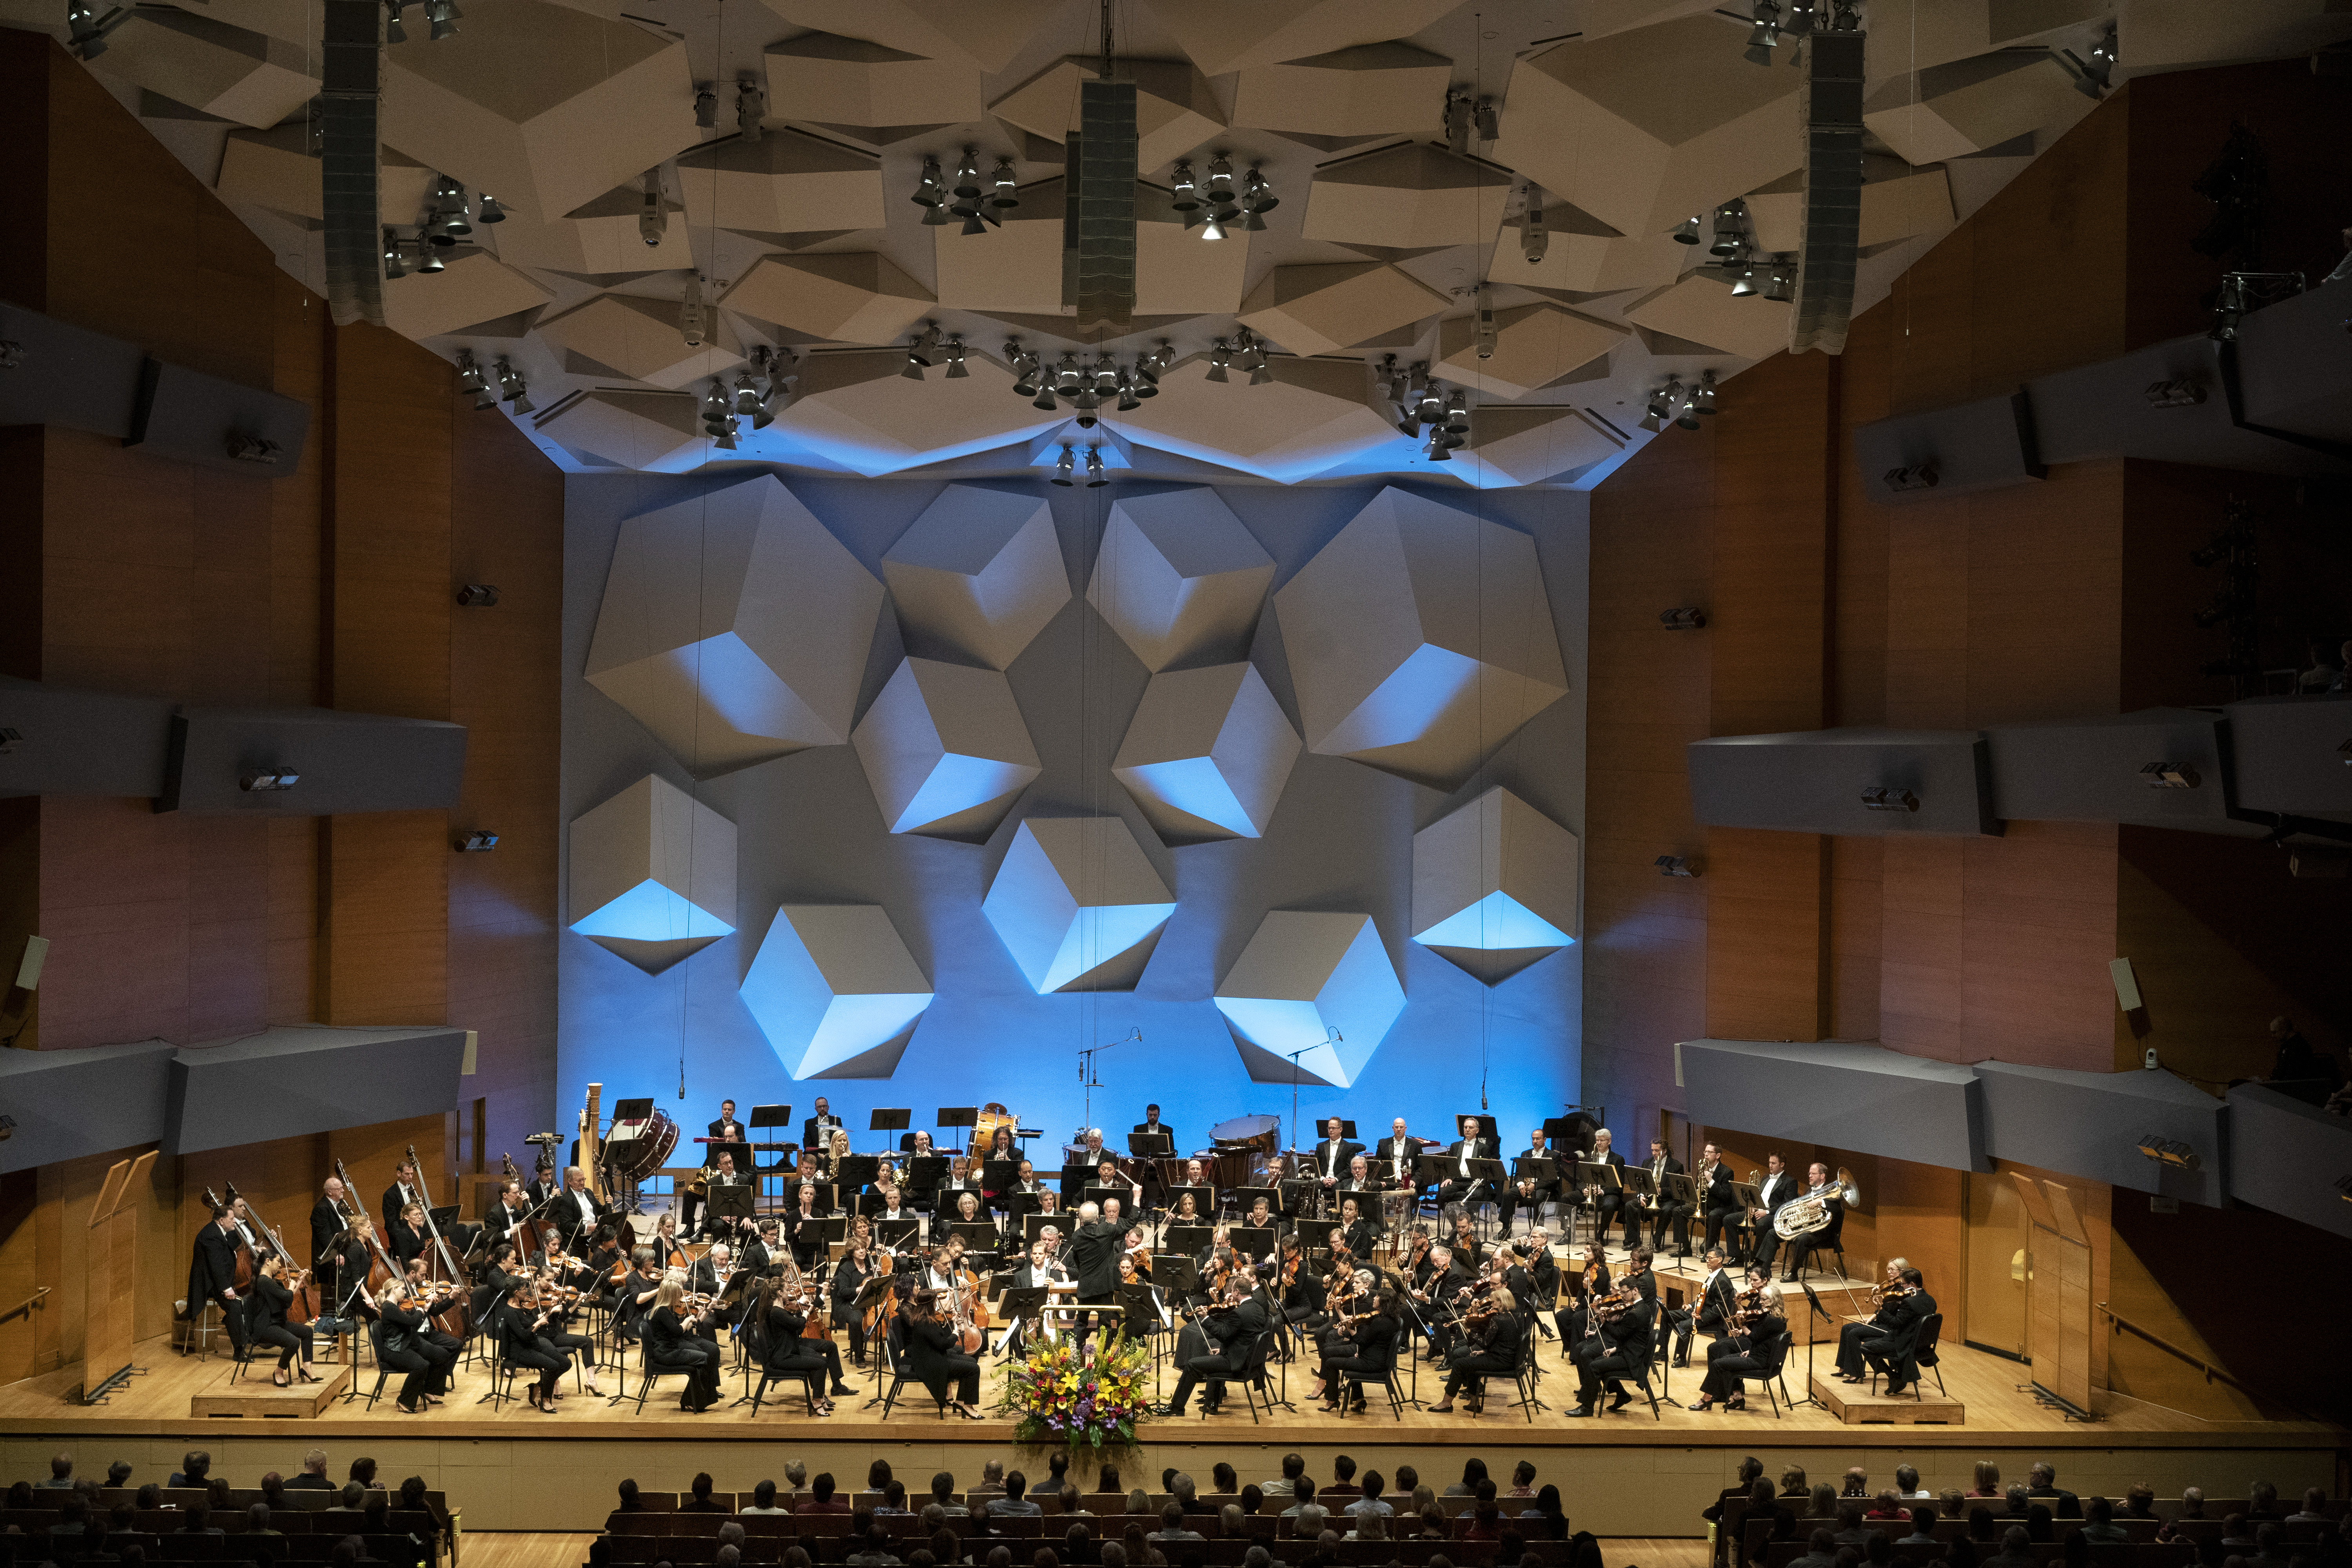 Minnesota Orchestra performance at Orchestra Hall